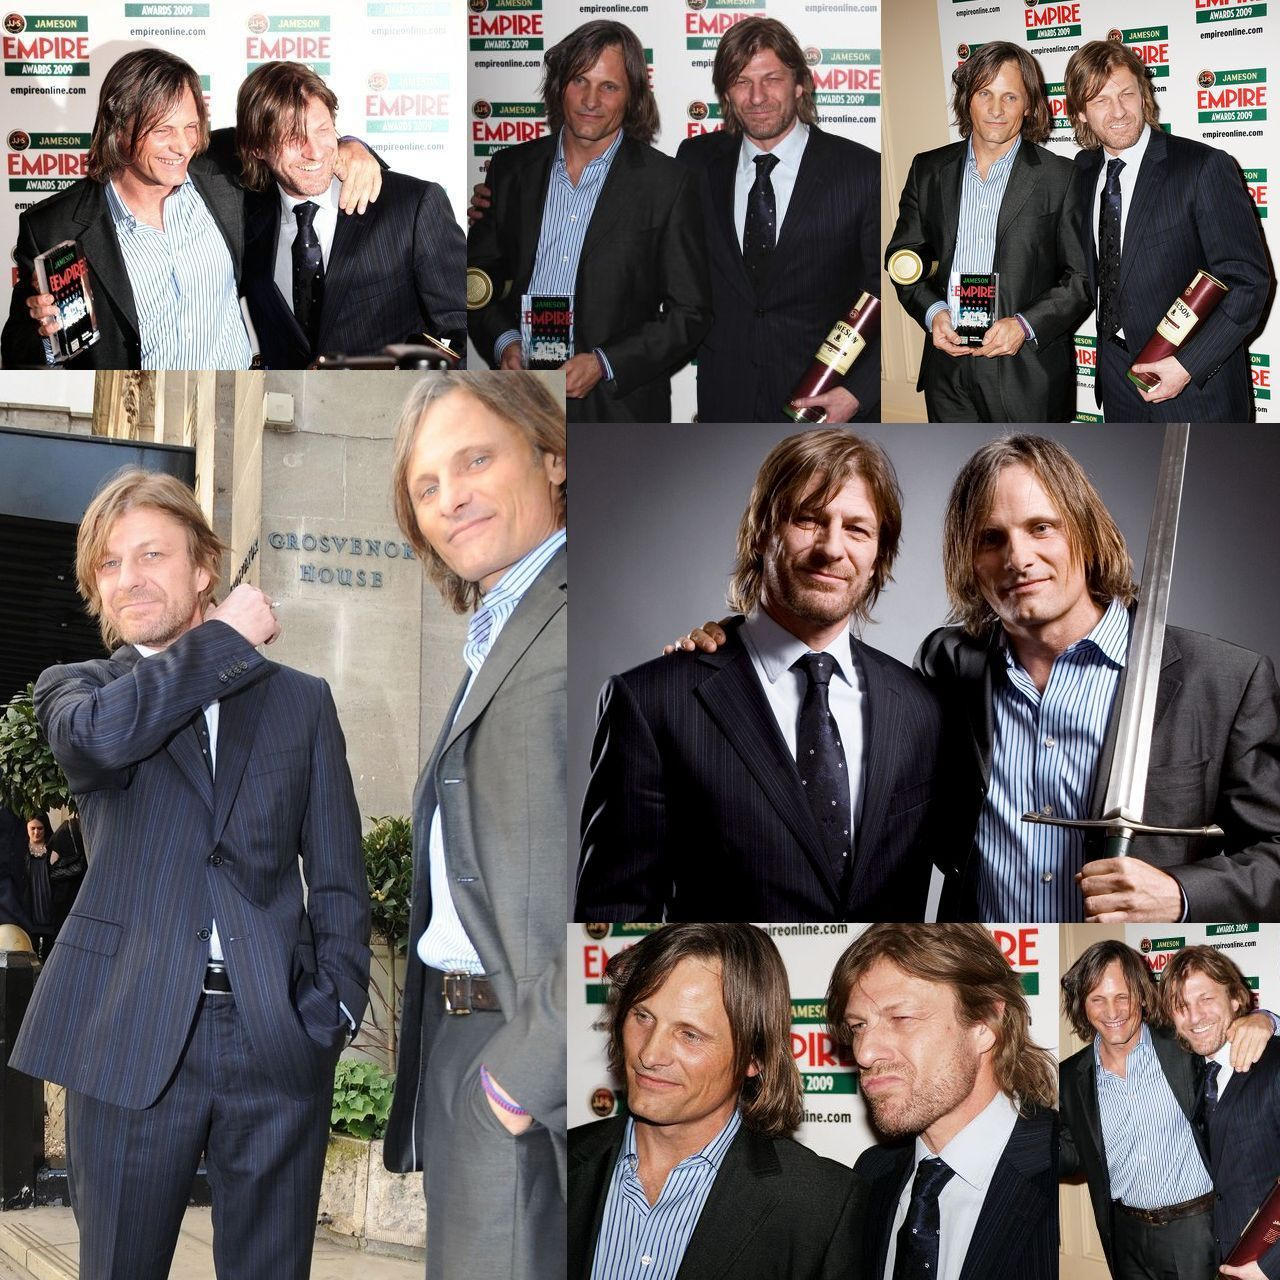 http://3.bp.blogspot.com/-6uM_ah9rcK0/UJT0l2COORI/AAAAAAAAZsA/ierIAyrP3BY/s1600/Viggo-Mortensen-and-Sean-Bean-lord-of-the-rings-14785269-1280-1280.jpg